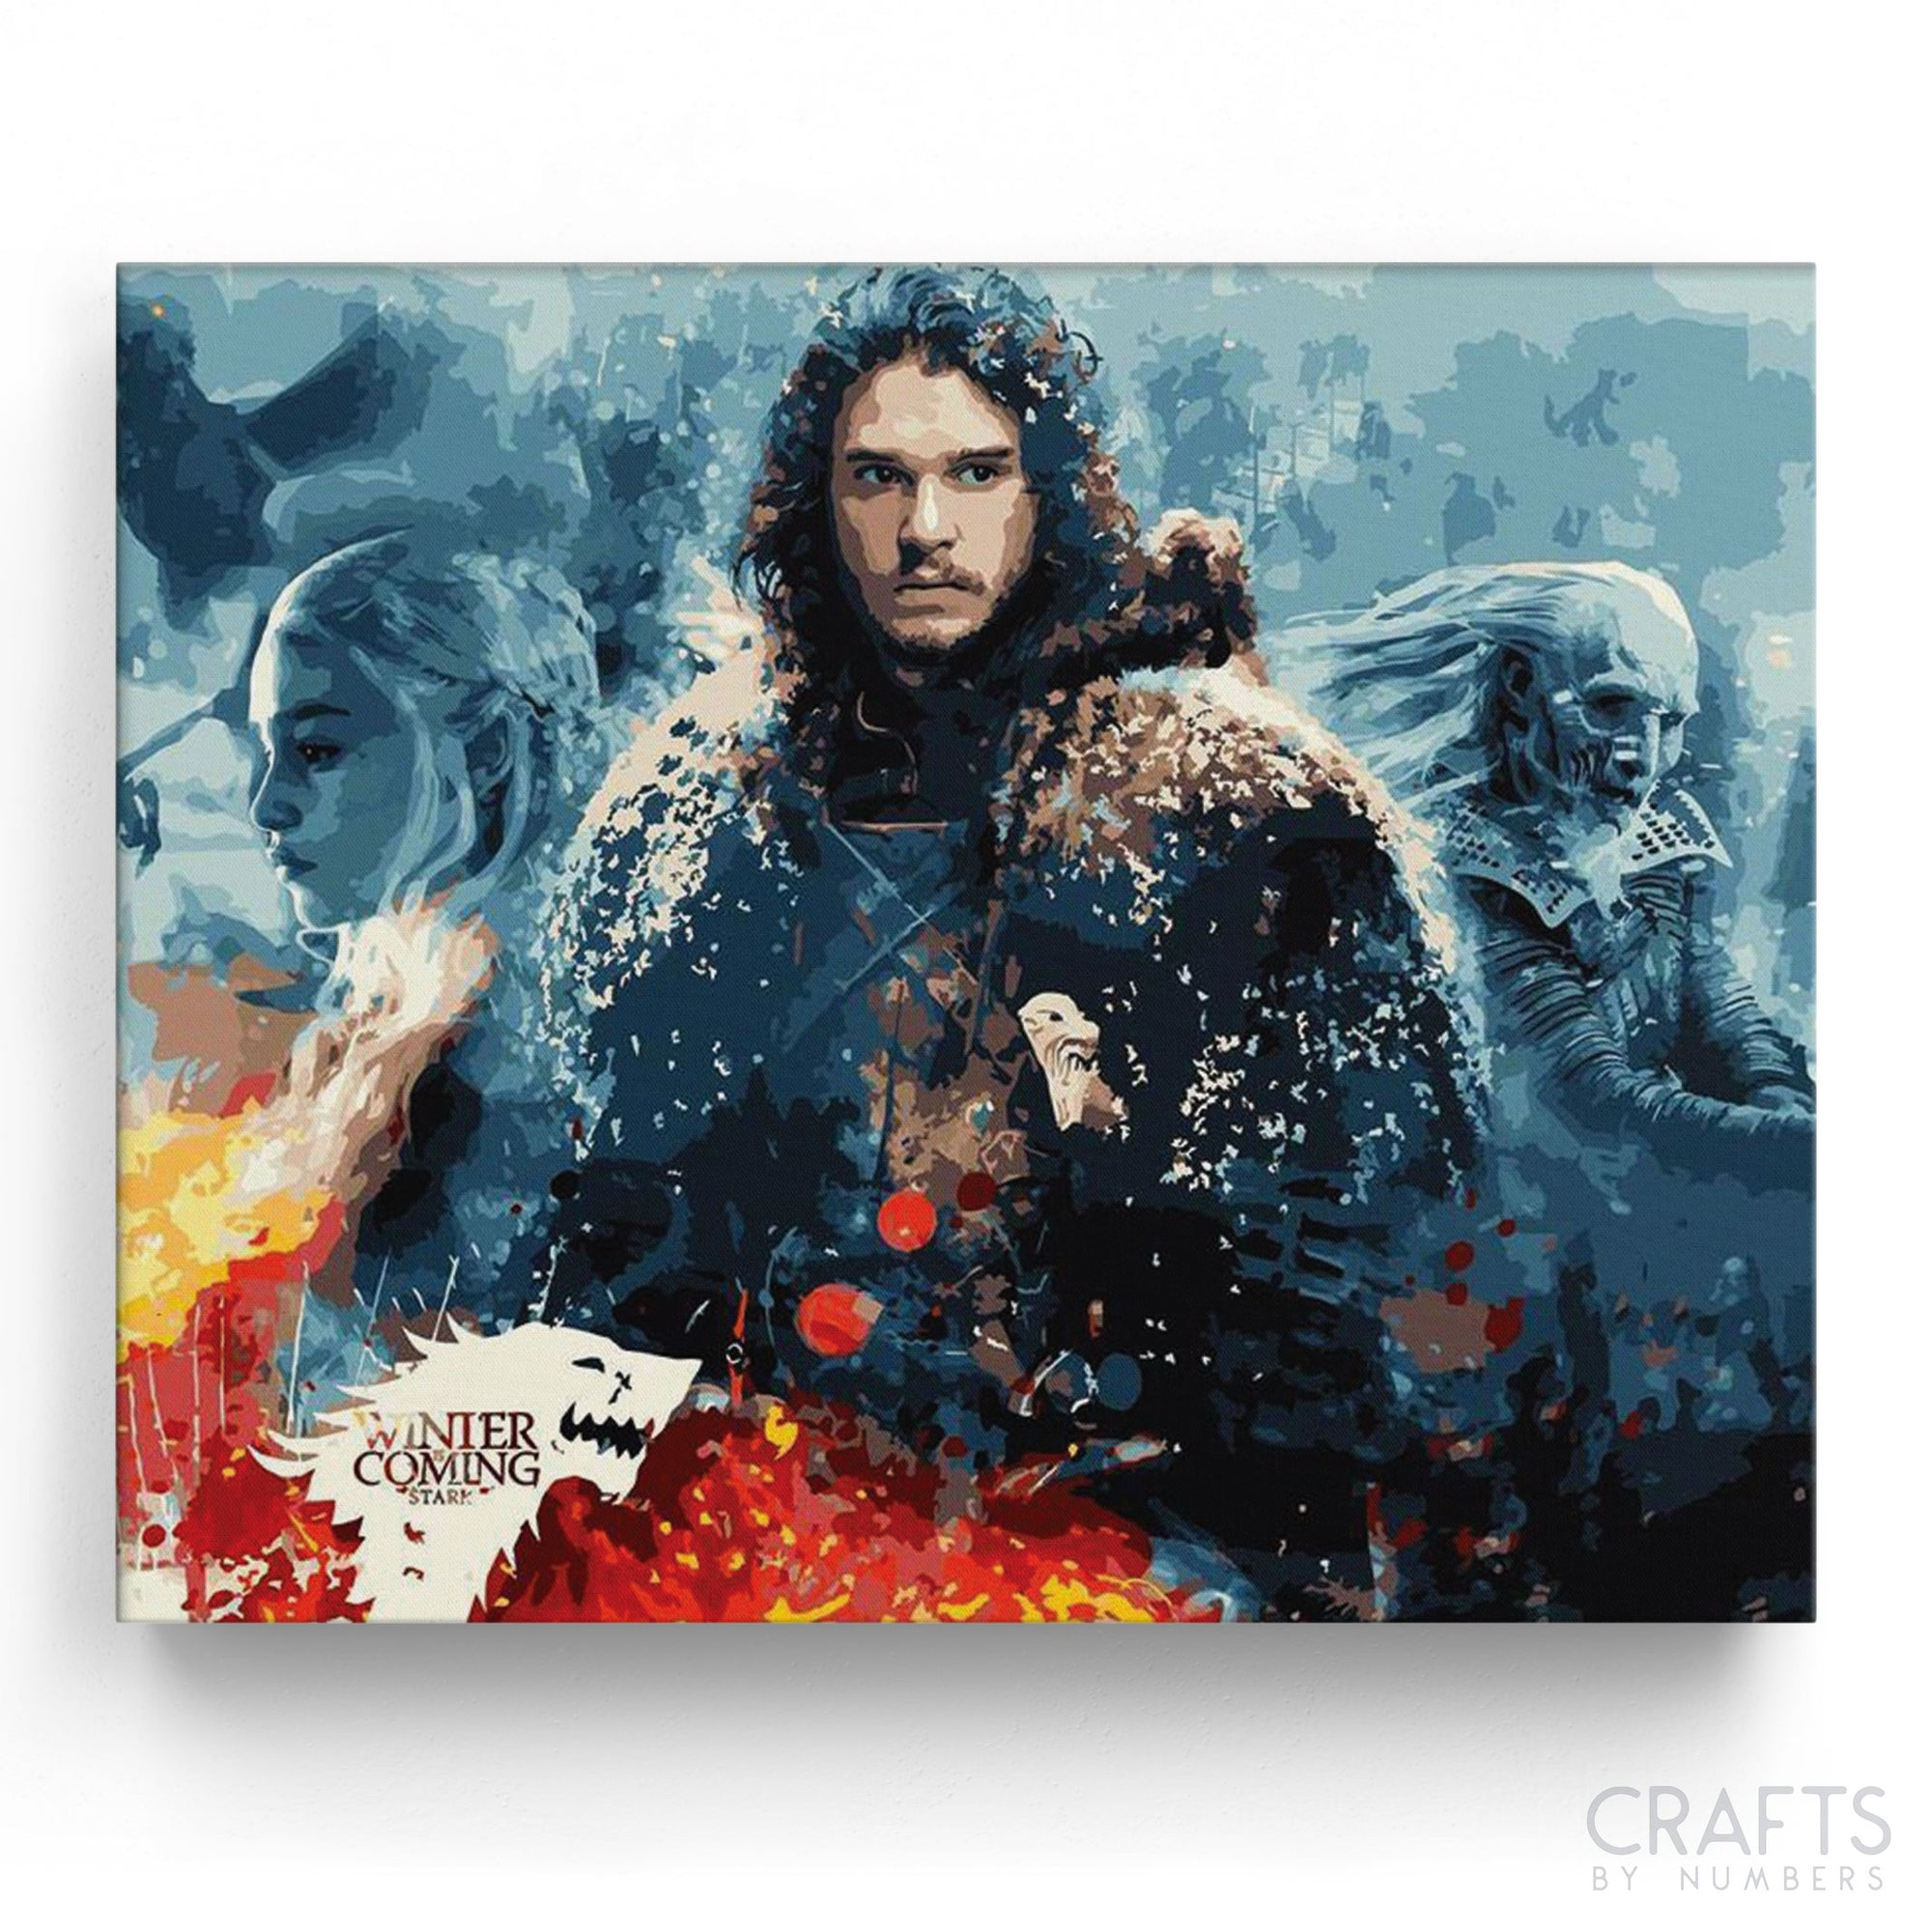 The Game of Thrones Art paint by numbers canvas for adults from paint pots